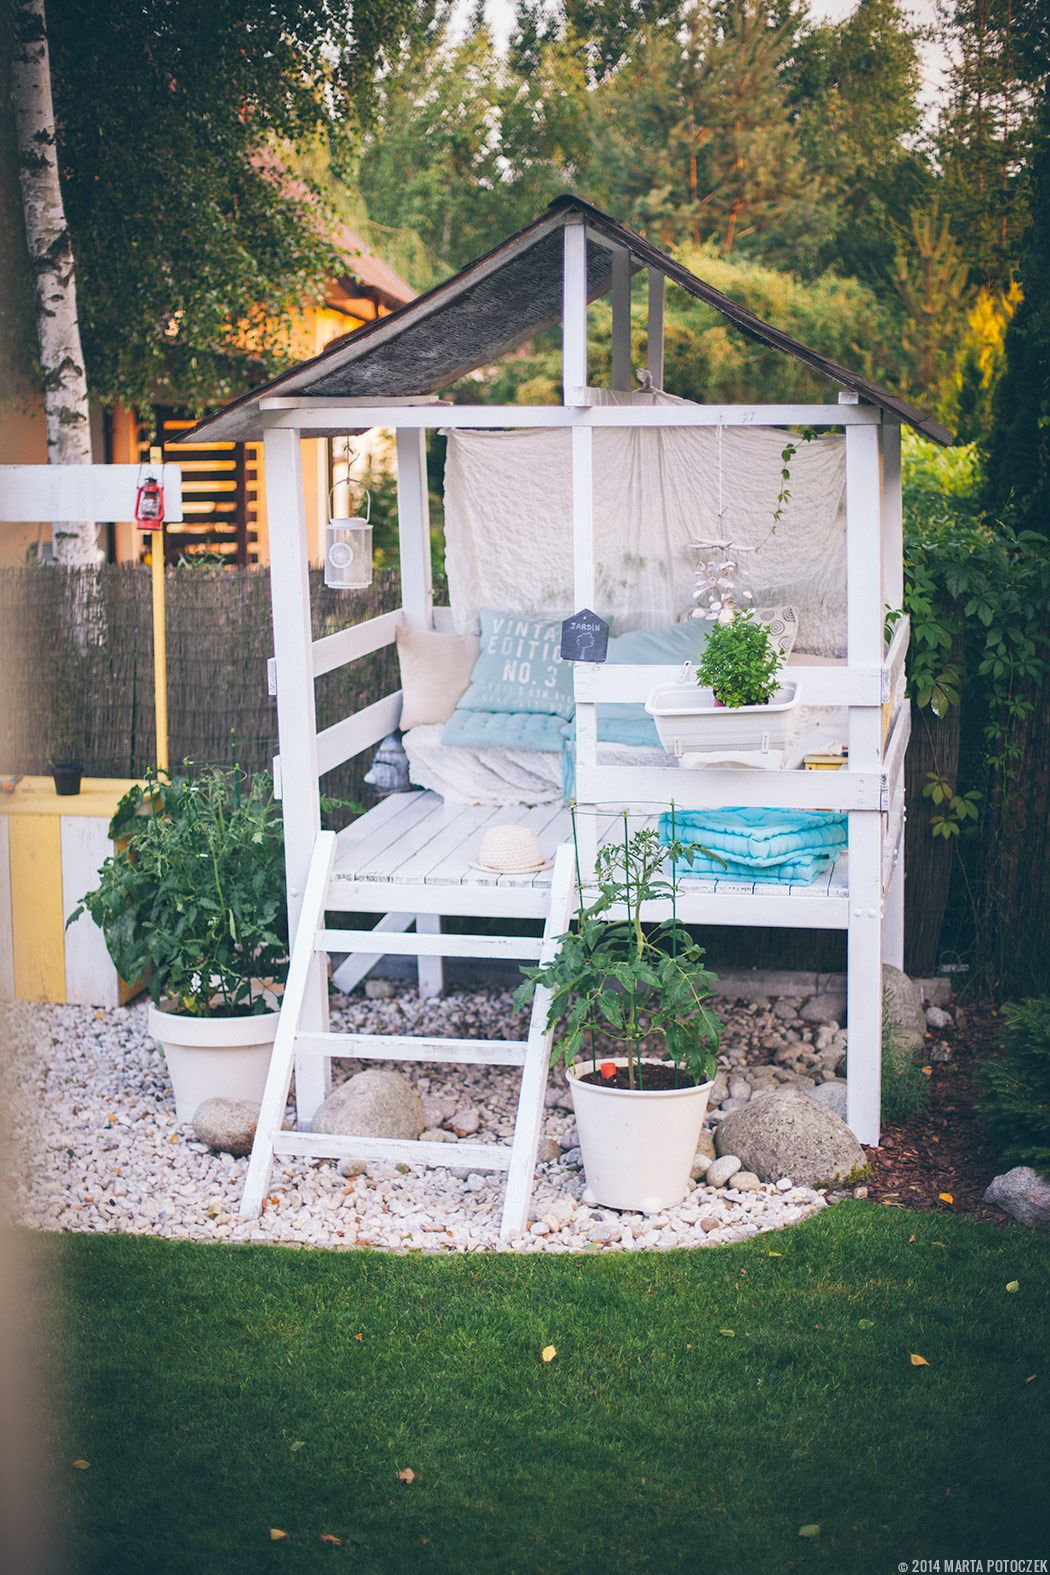 15 diy how to make your backyard awesome ideas 9 play houses